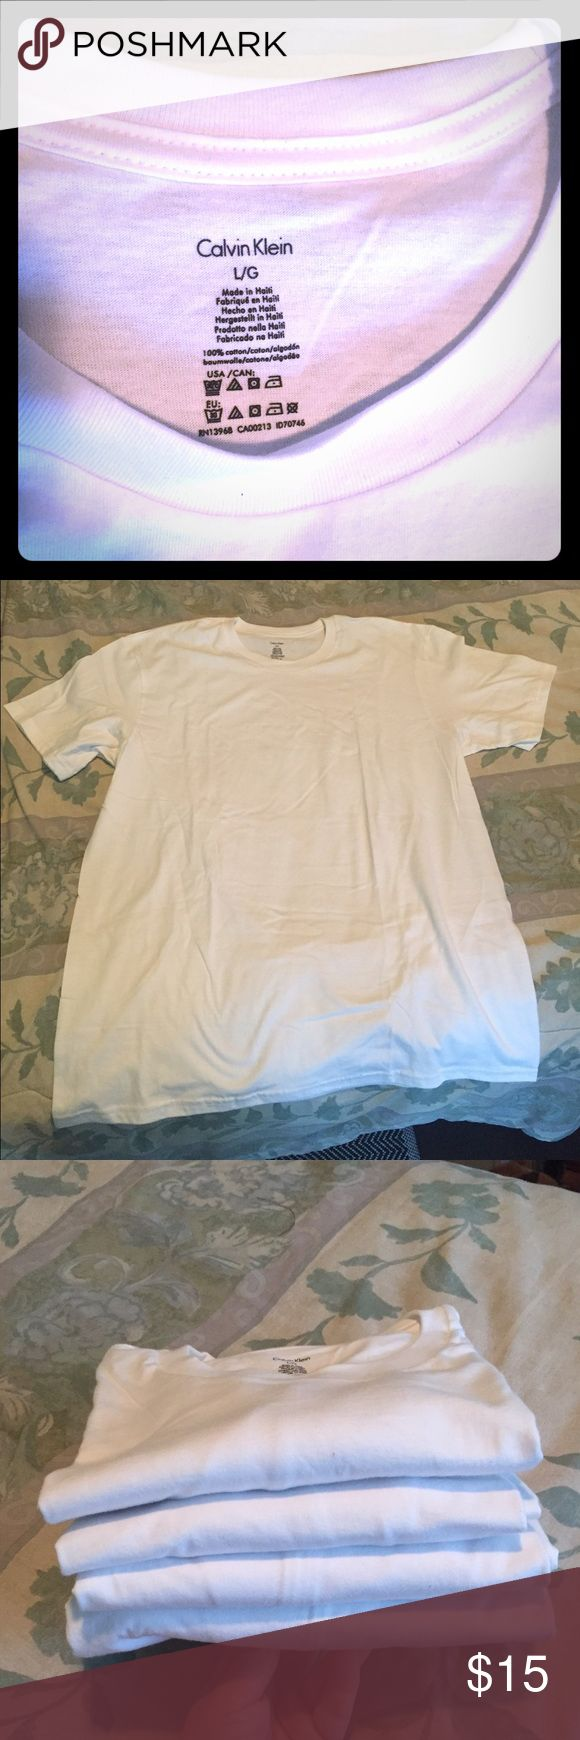 Four NWOT Calvin Klein Men's Shirts These shirts are a men's size large. They were purchased for my boyfriend who has no need for them! I am willing to see these individually if you are not looking for four new shirts! Please feel free to message me or make an offer! Calvin Klein Shirts Tees - Short Sleeve